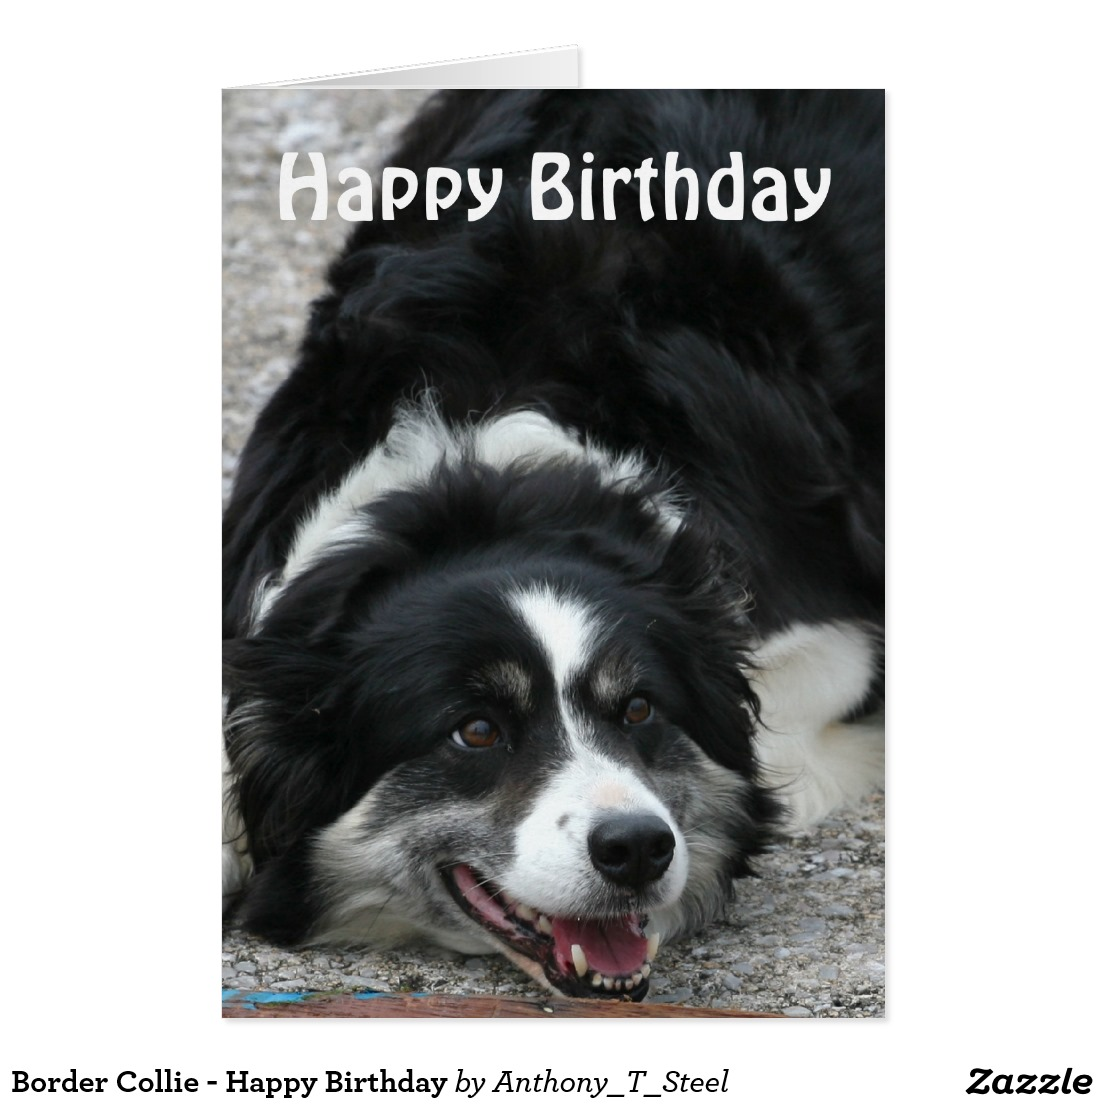 border collie birthday images ; 333db4df1e466d2806d1b0198b885d27